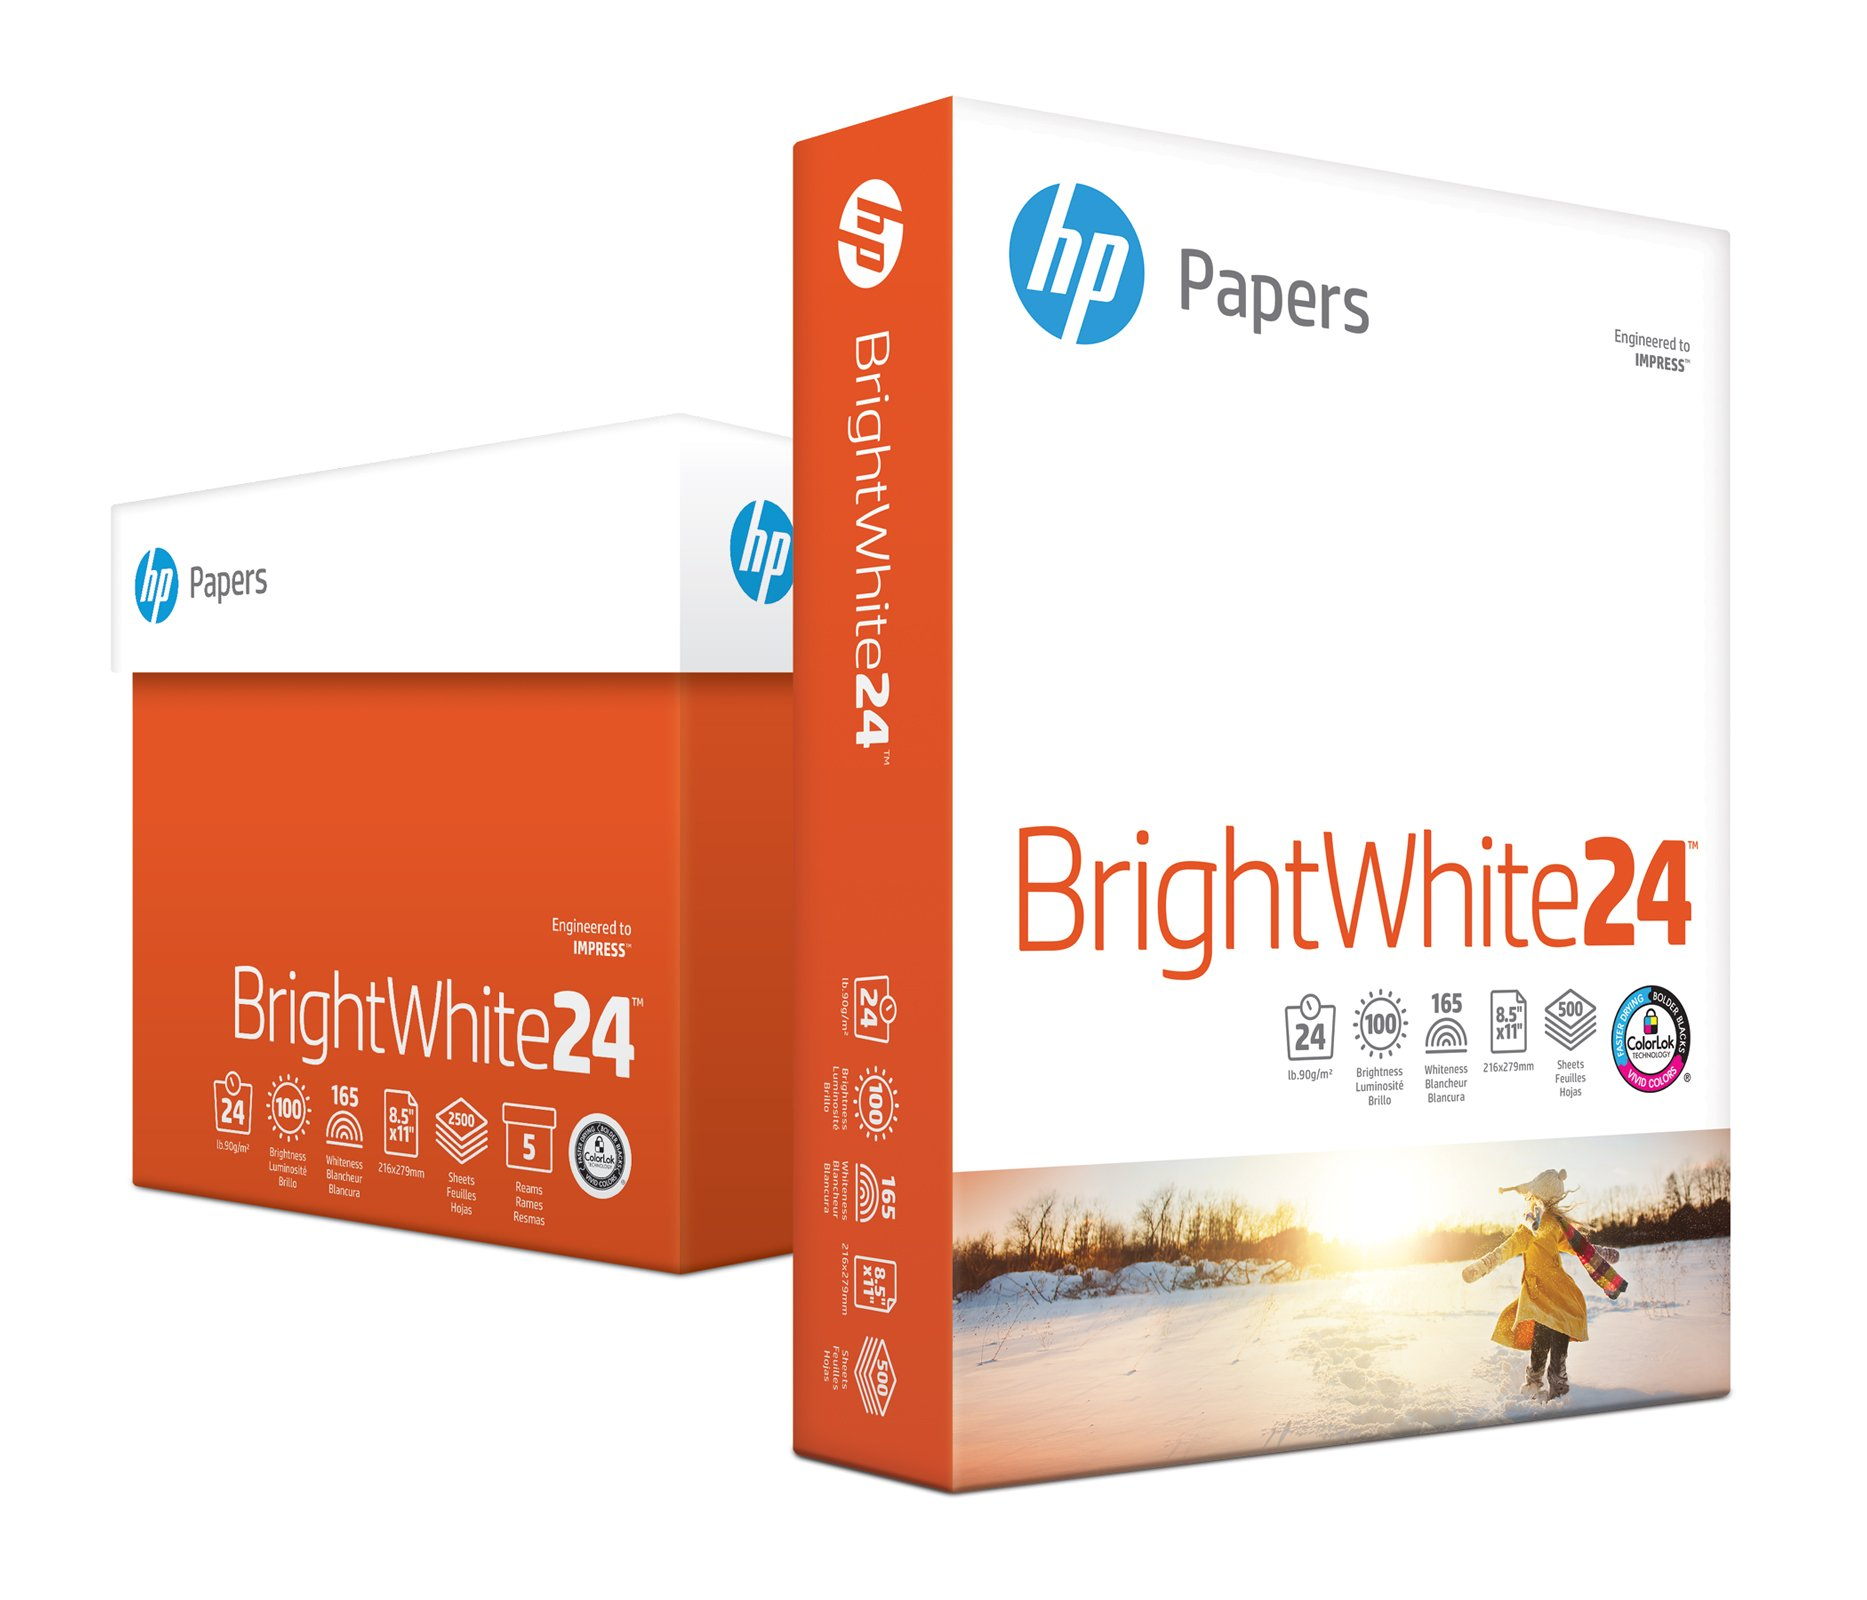 HP Printer Paper, BrightWhite24, 8.5 x 11, Letter, 24lb, 97 Bright, 2,500 Sheets/5 Ream Carton (203000C) Made In The USA